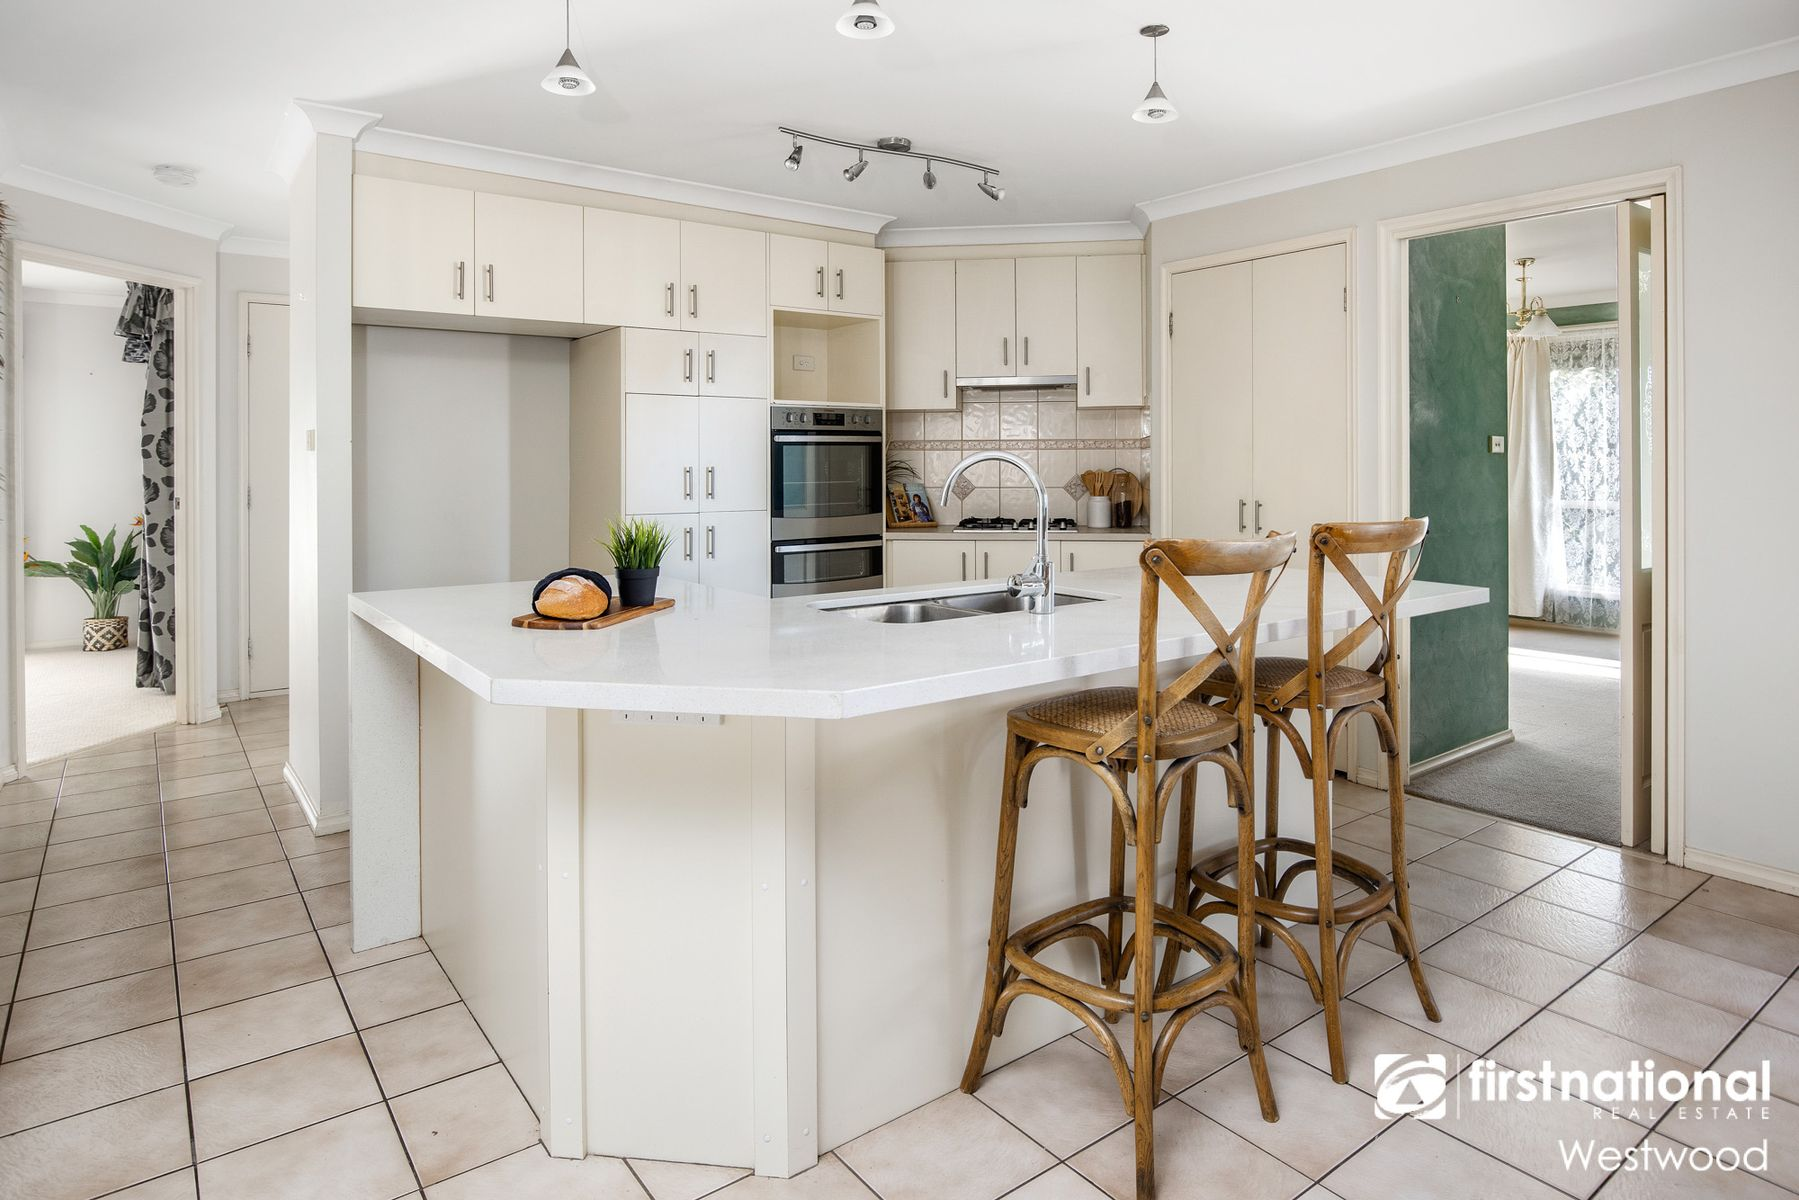 1 Parkview Close, Hoppers Crossing, VIC 3029